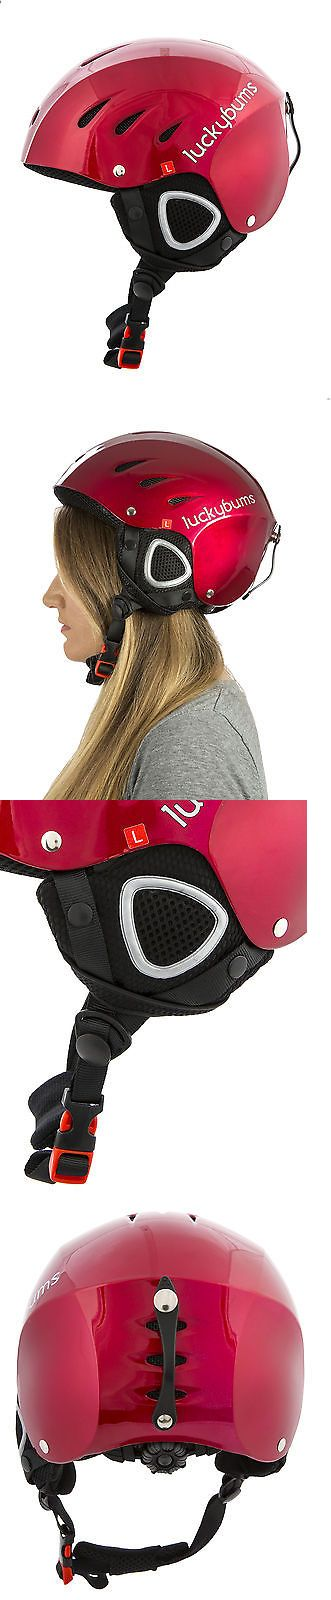 Protective Gear 36260: Lucky Bums Snow Sport Helmet, Red, Large -> BUY IT NOW ONLY: $39.99 on eBay!